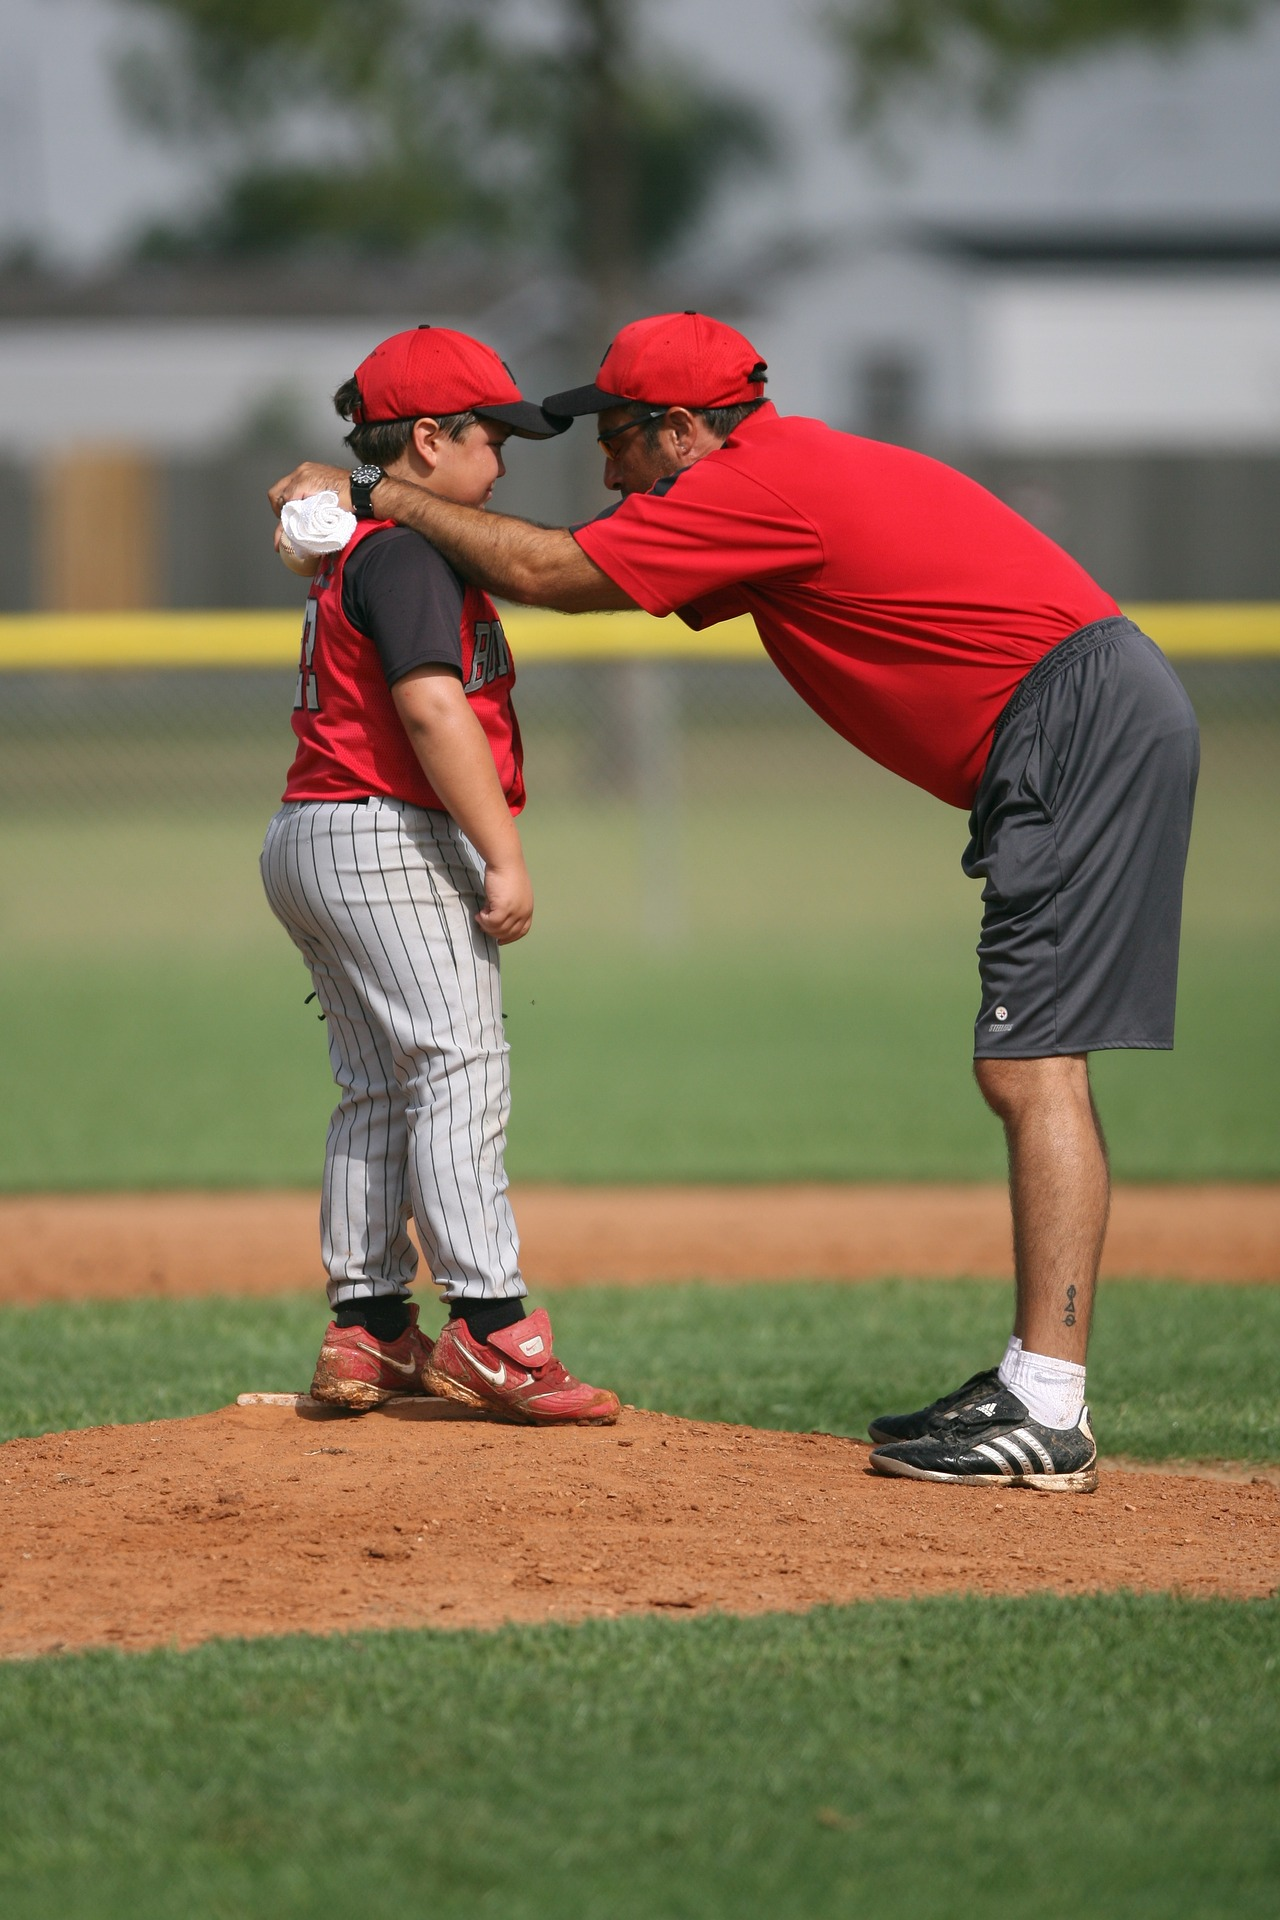 Should My Kid Learn Slide Step in Pitching Lessons?